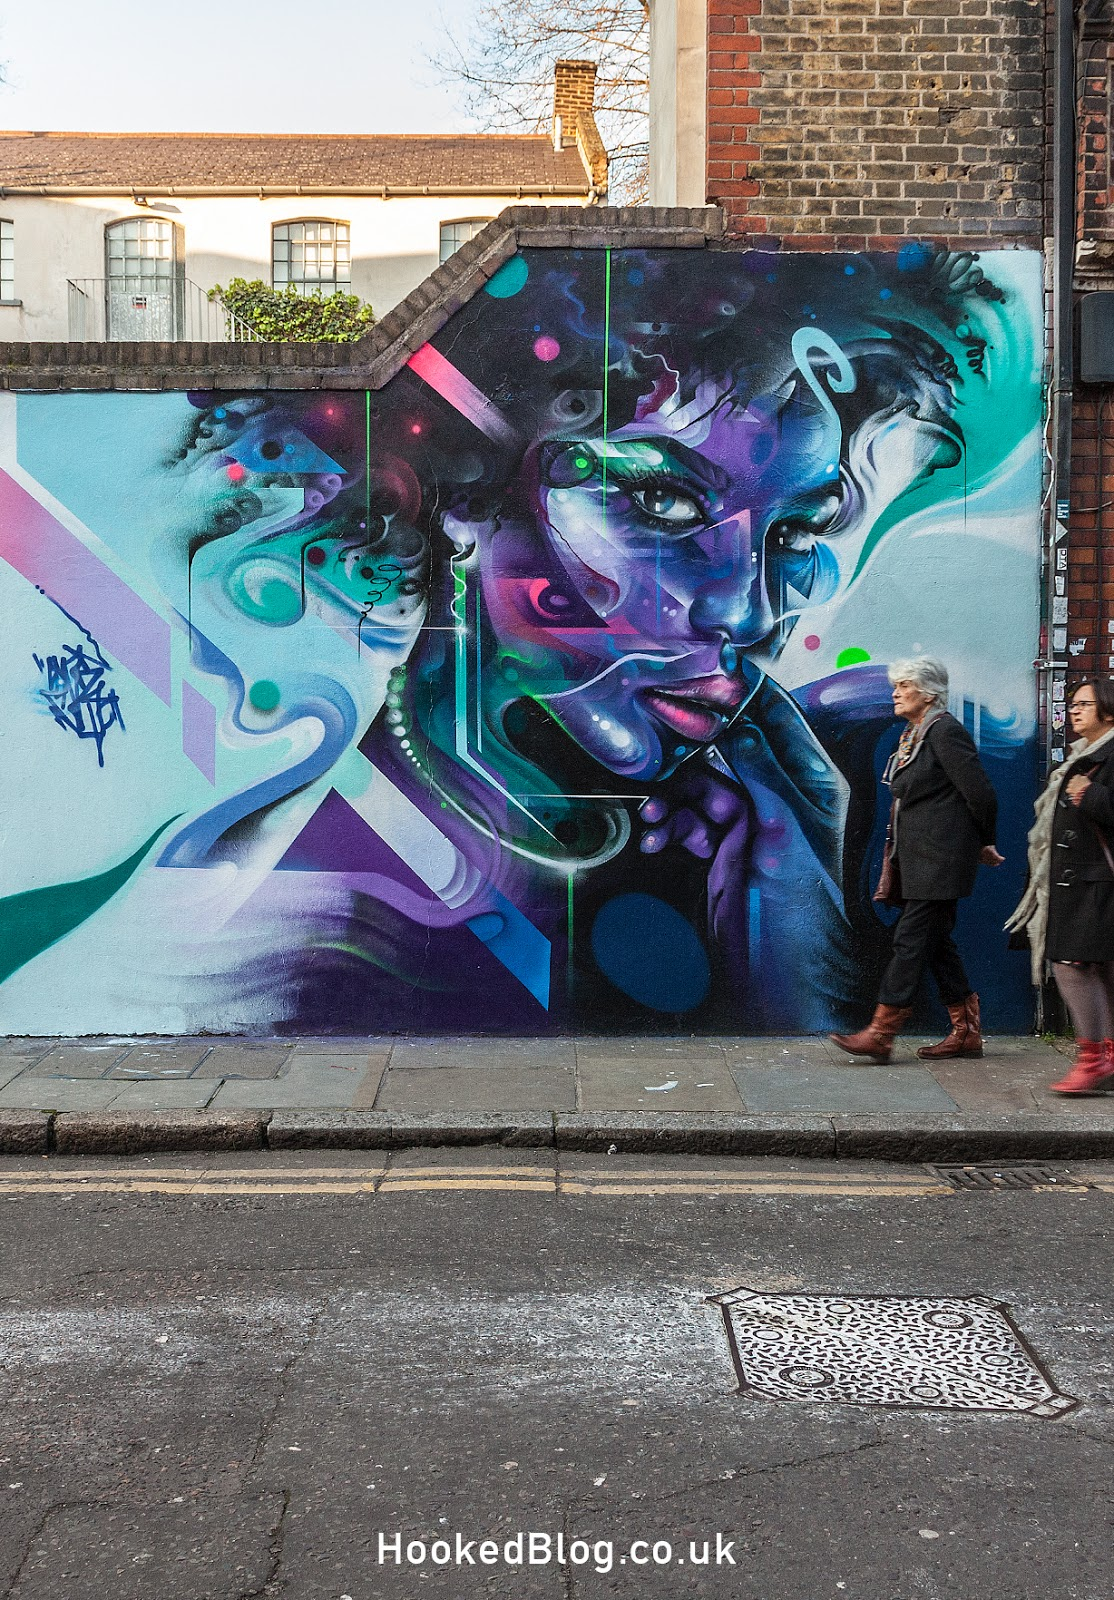 Brick Lane Street Art Mural by artist Mr Cenz. Photo ©Hookedblog / Mark Rigney